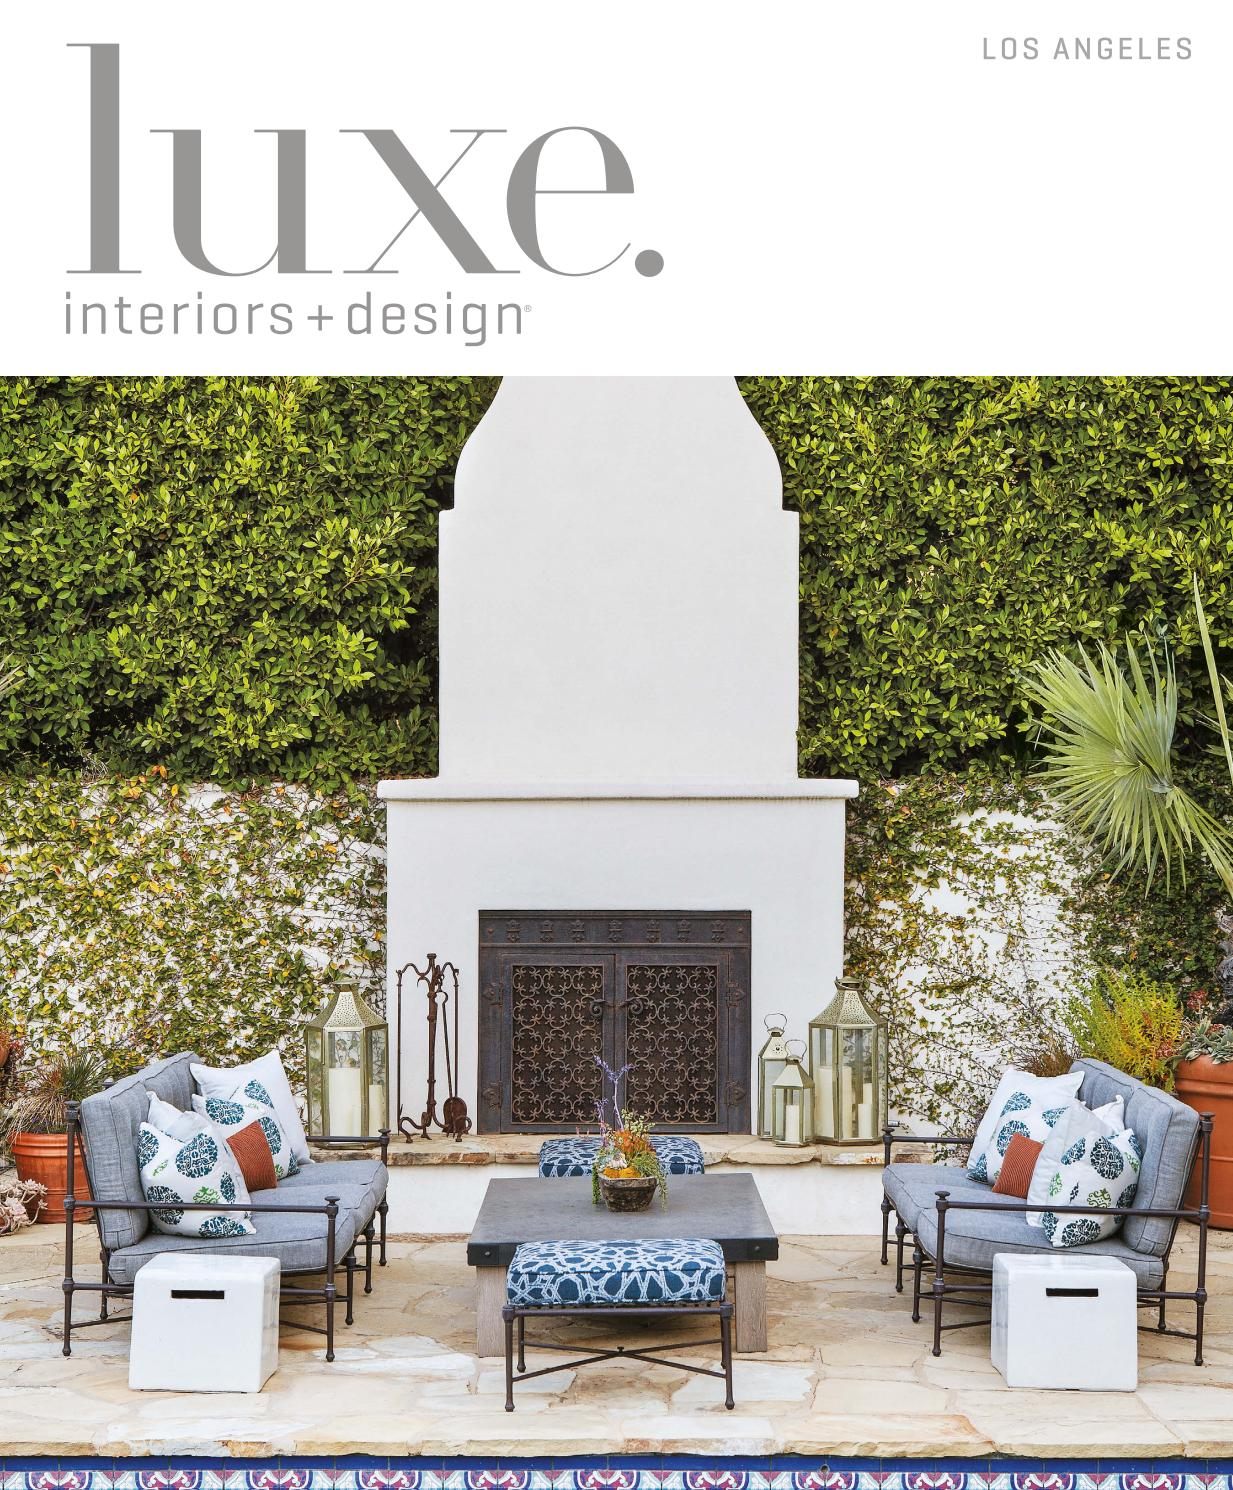 luxe magazine los angeles sandow issuu page miles redd kidney accent table inch round tablecloth pier one curtains solid oak tables white cloth placemats wooden trellis small